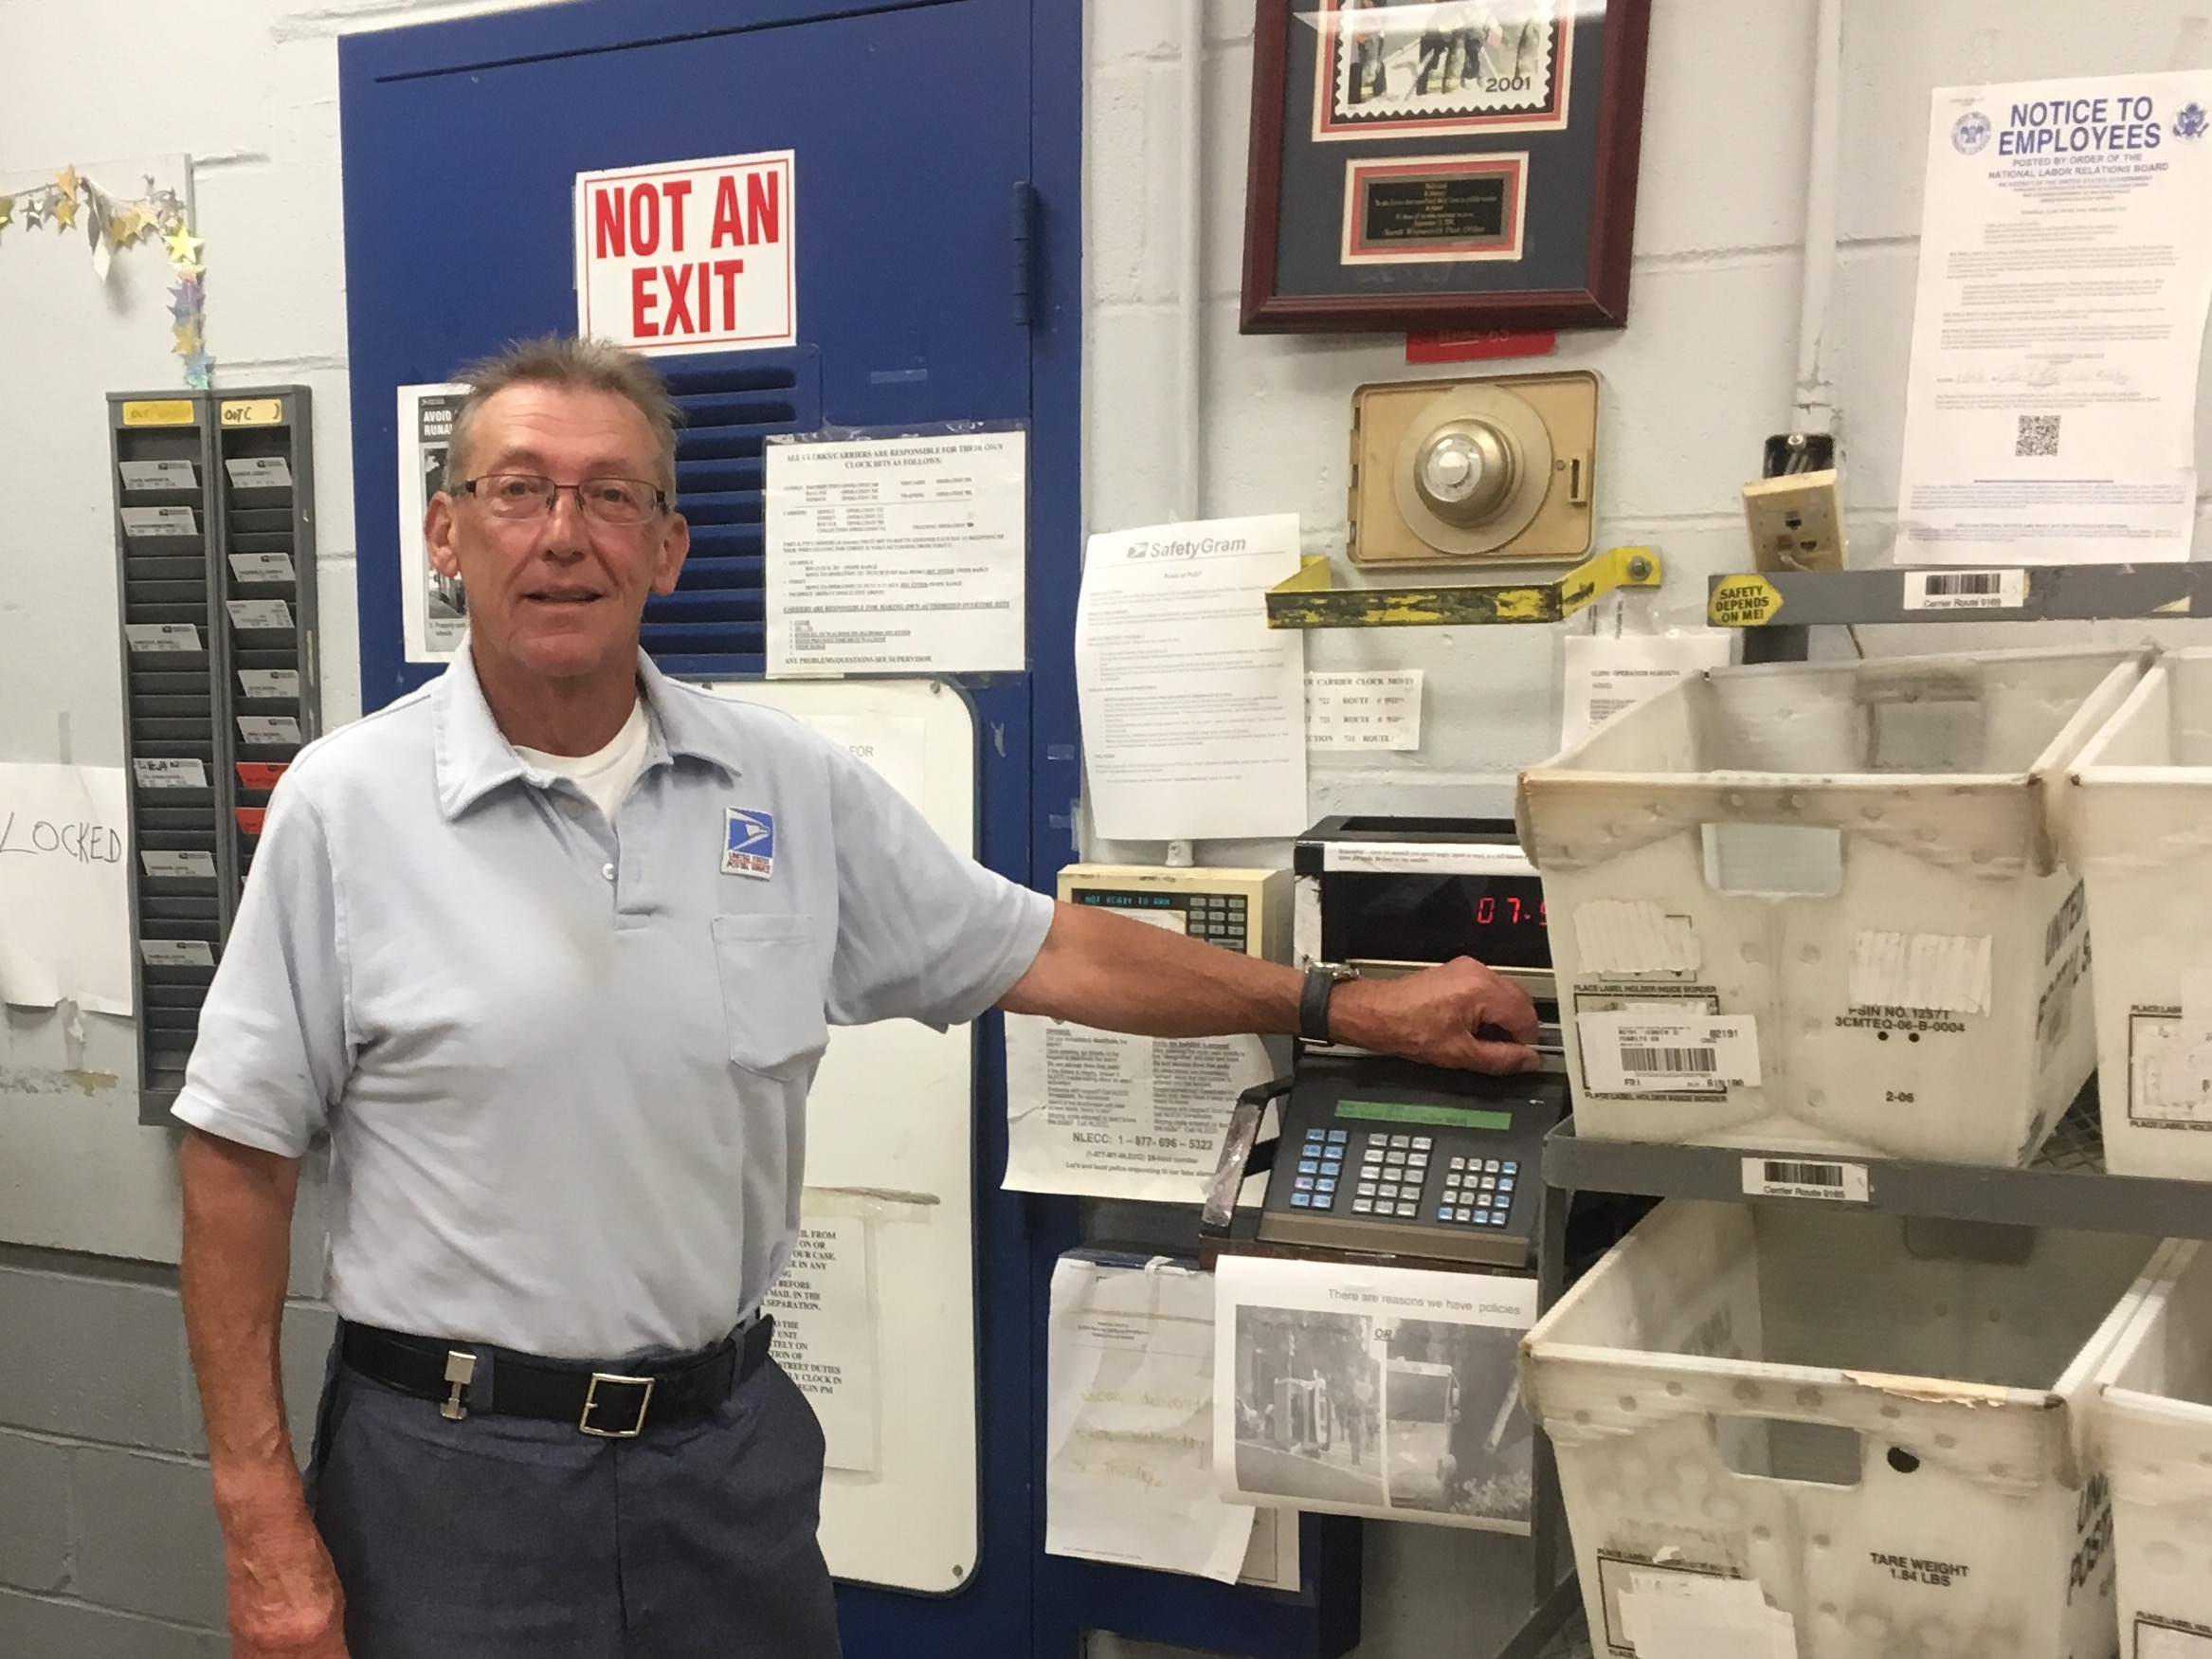 North Weymouth's Bill Goodwin clocks in on his last day following a thirty-year career.